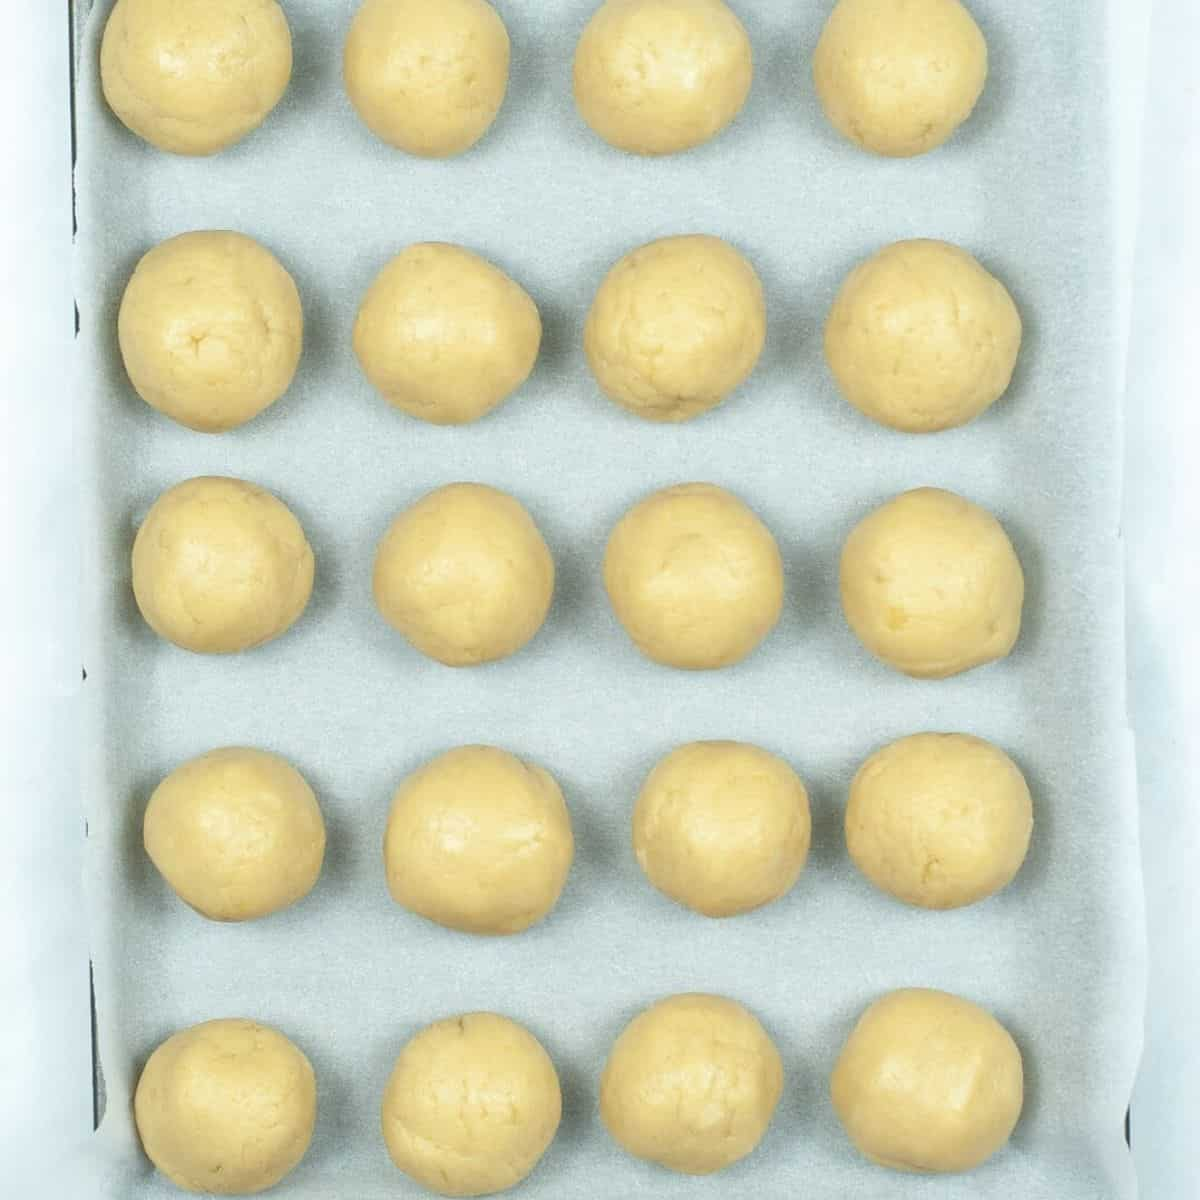 Rolled cake pop dough on a baking sheet lined with parchment paper.